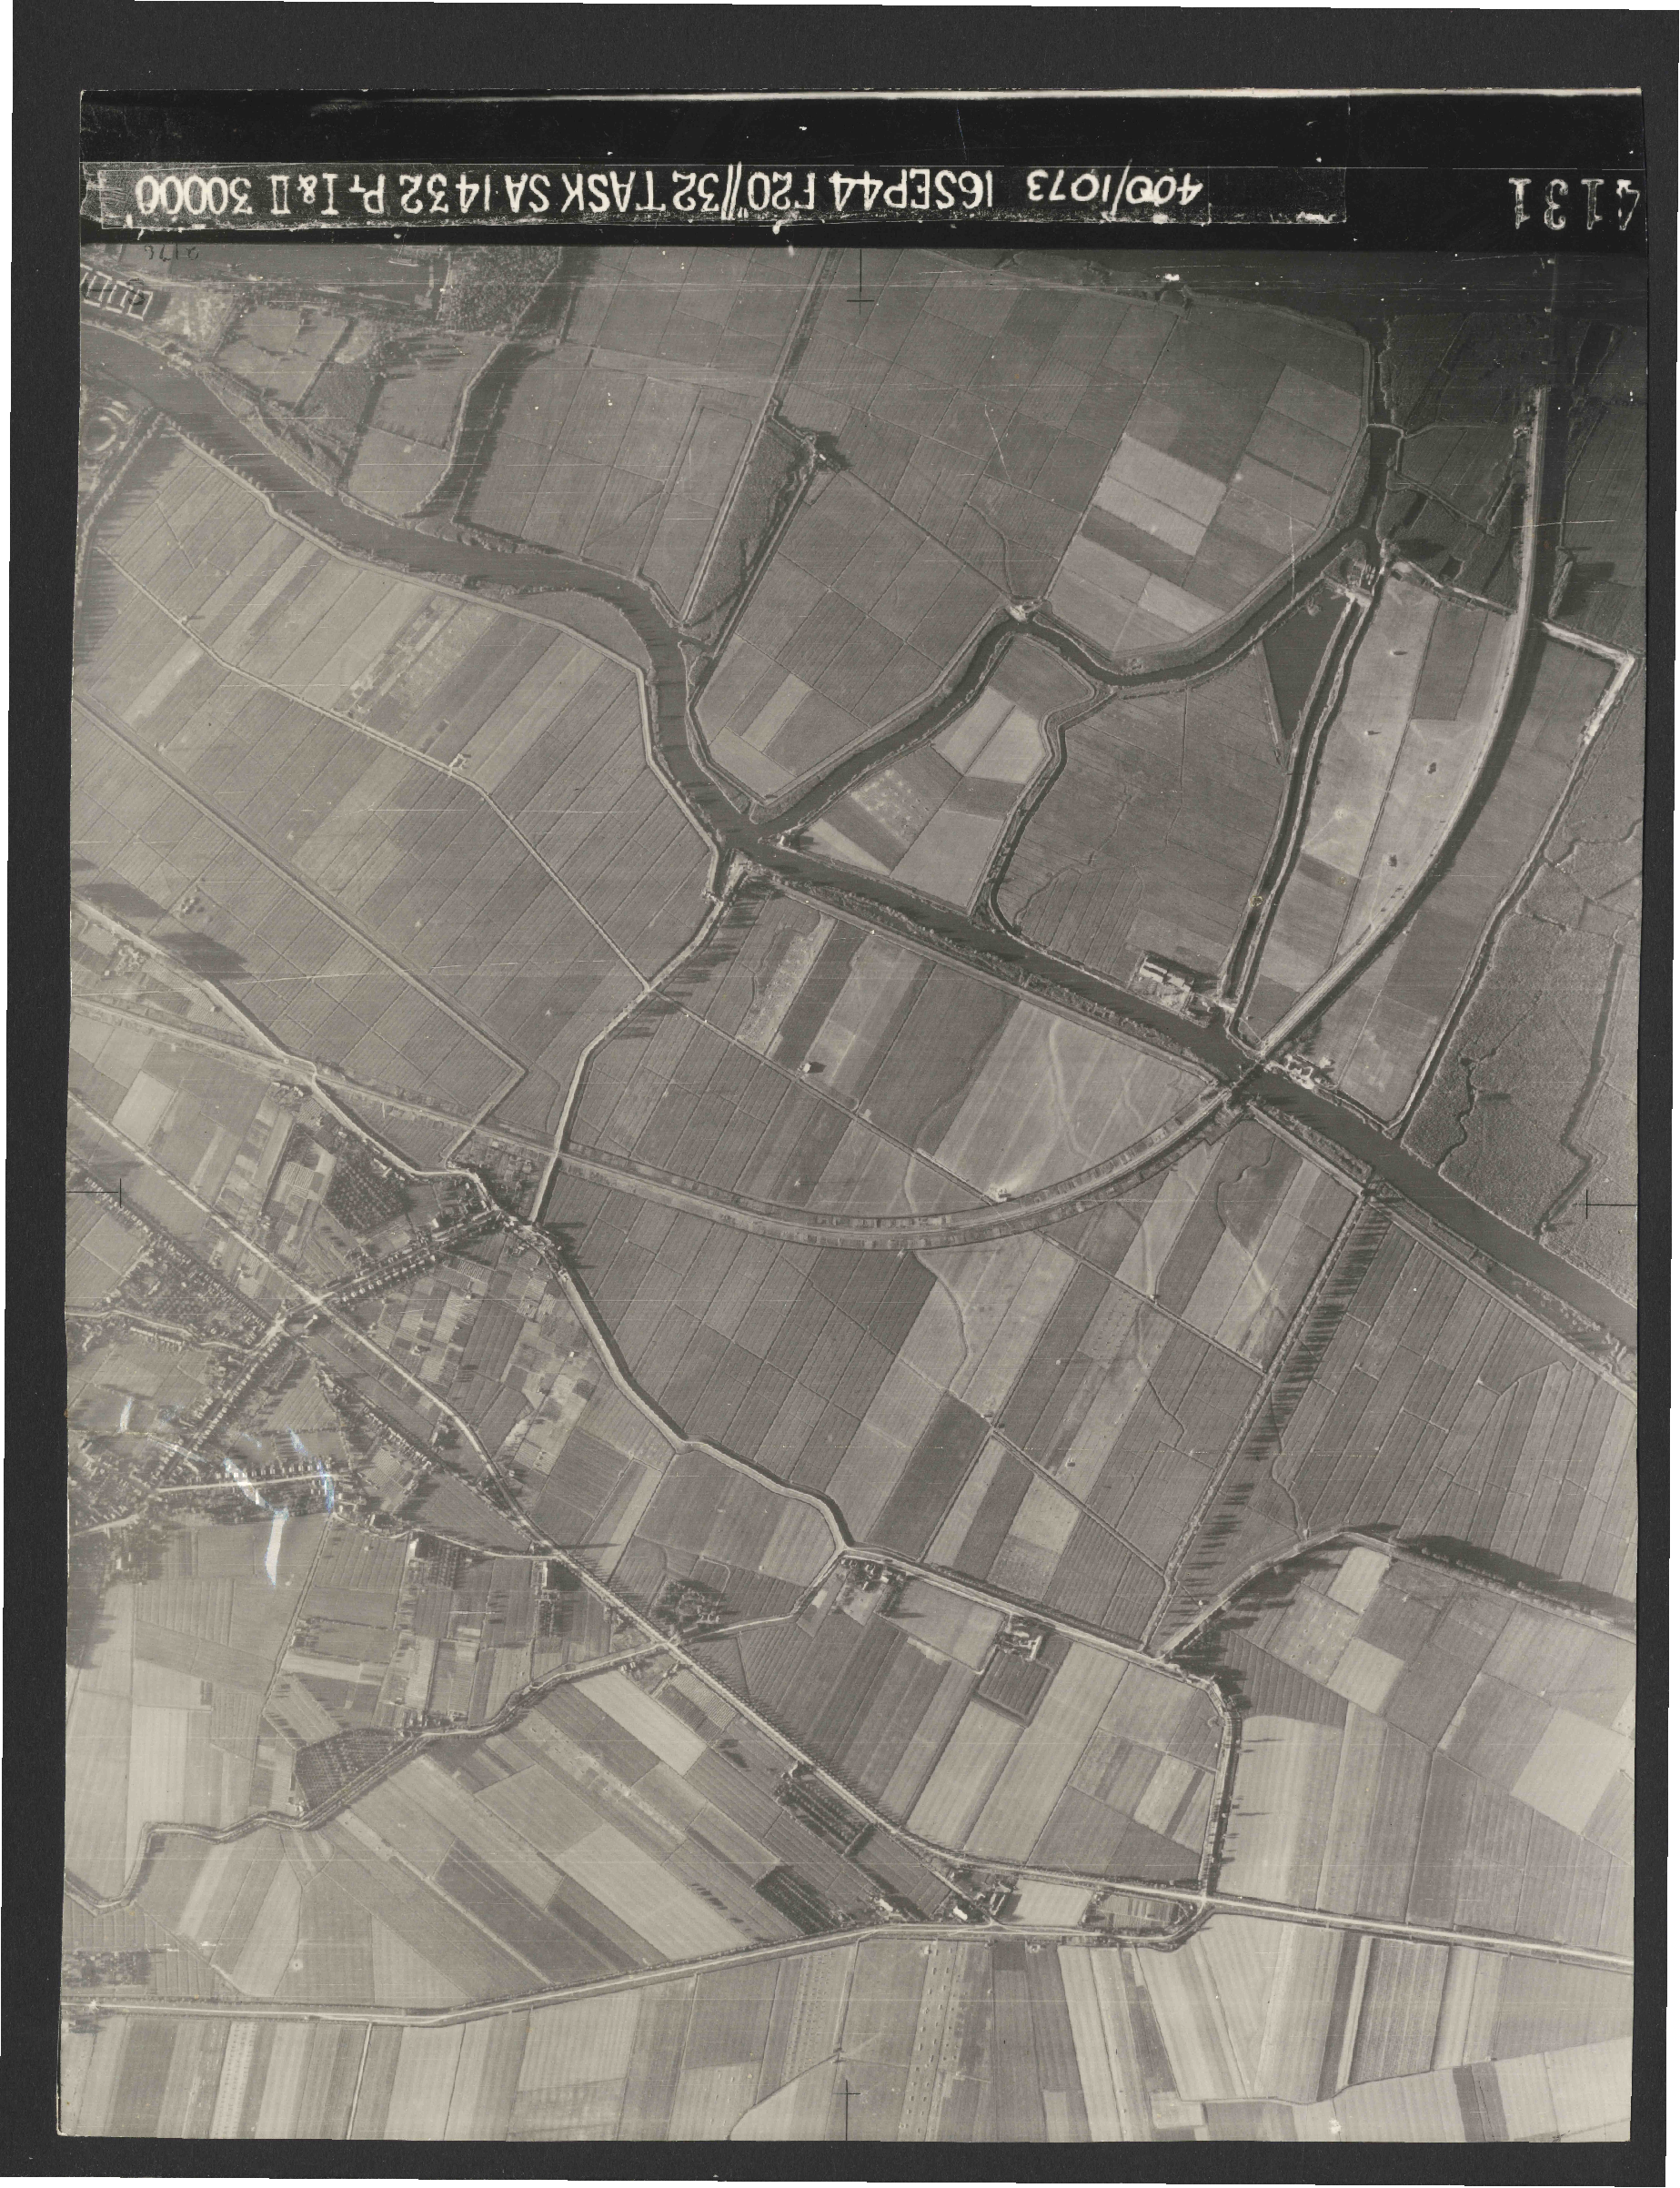 Collection RAF aerial photos 1940-1945 - flight 013, run 02, photo 4131